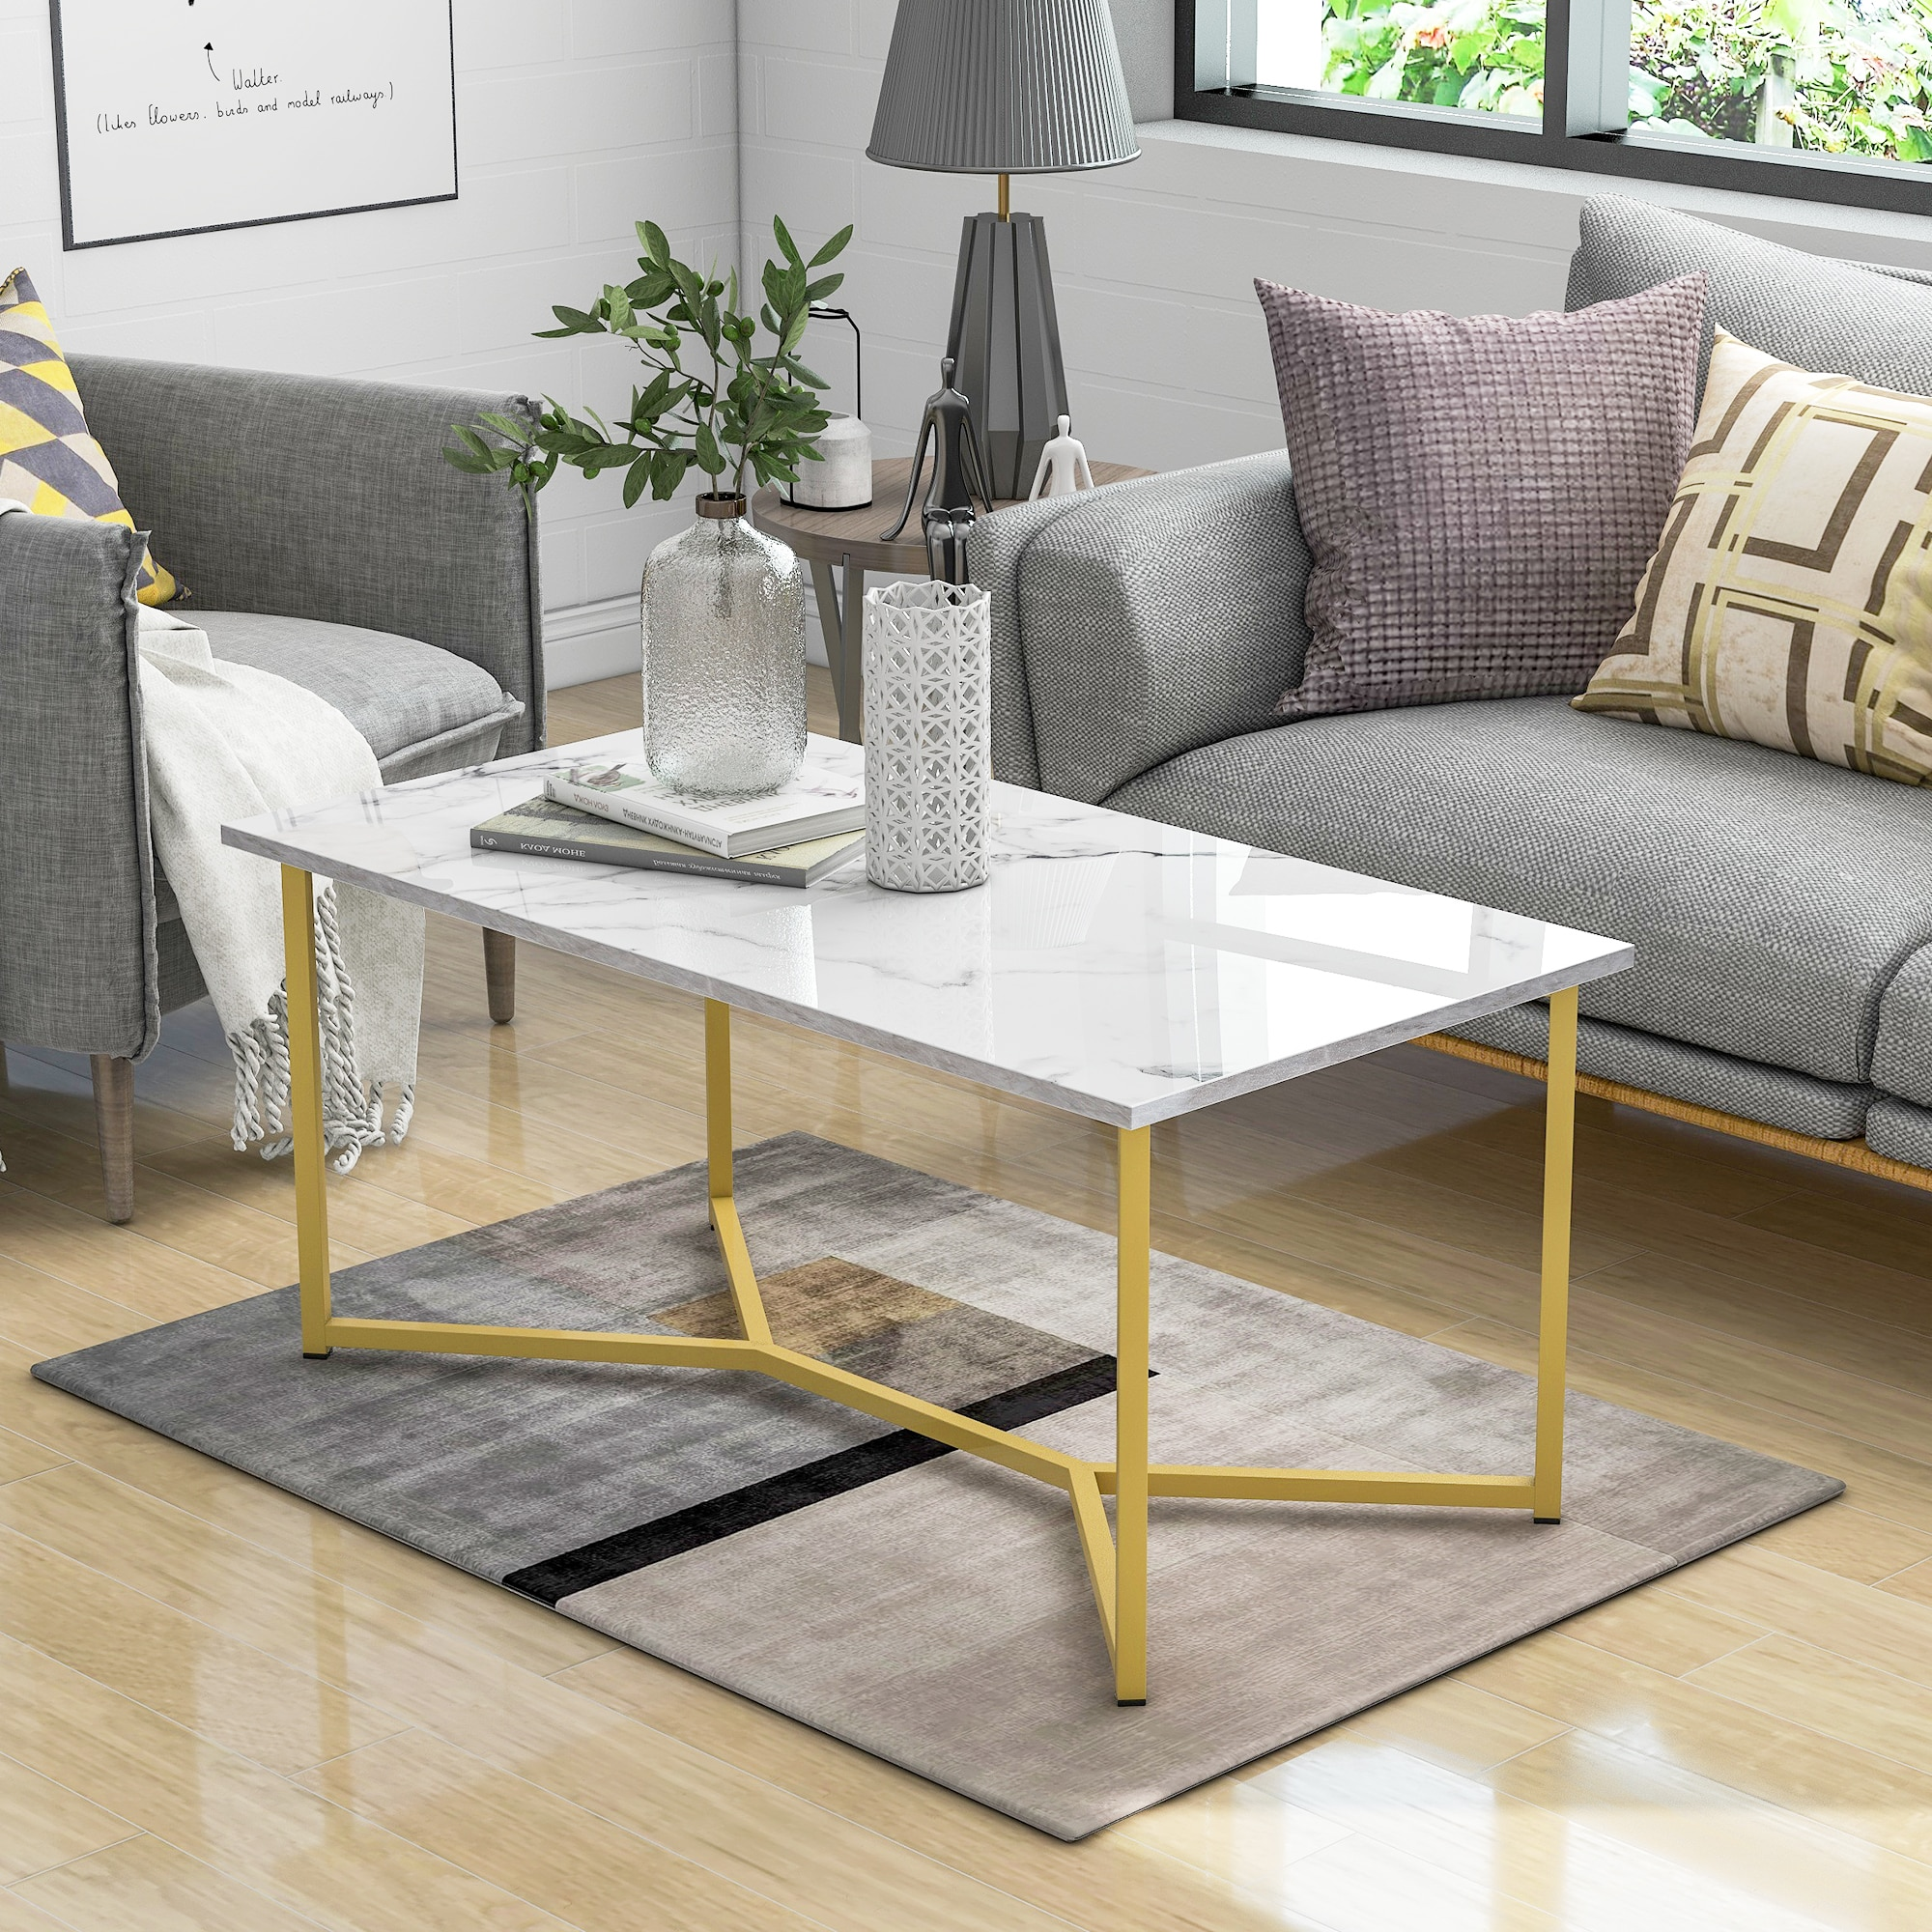 flash furniture 24 x 42 rectangular black laminate table top with 22 x 30 table height base Modern Rectangle Wooden Coffee Table Stylish White Marble Top X-shape Gold Black Base Simple Retro Industrial Style Home Decor